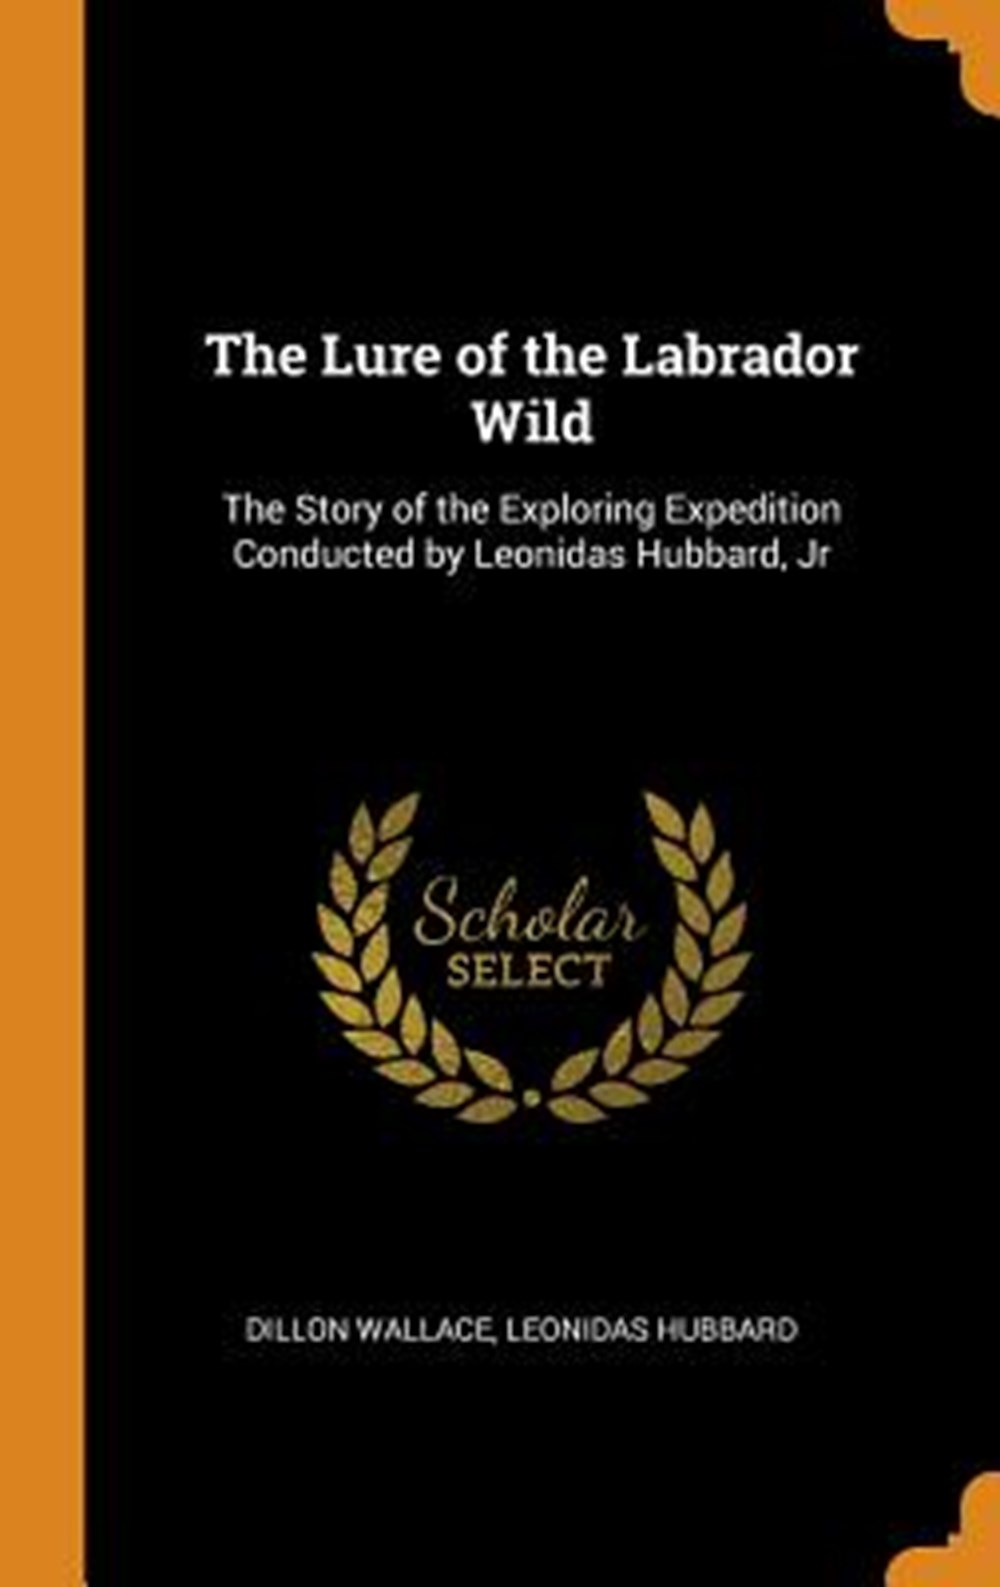 Lure of the Labrador Wild The Story of the Exploring Expedition Conducted by Leonidas Hubbard, Jr